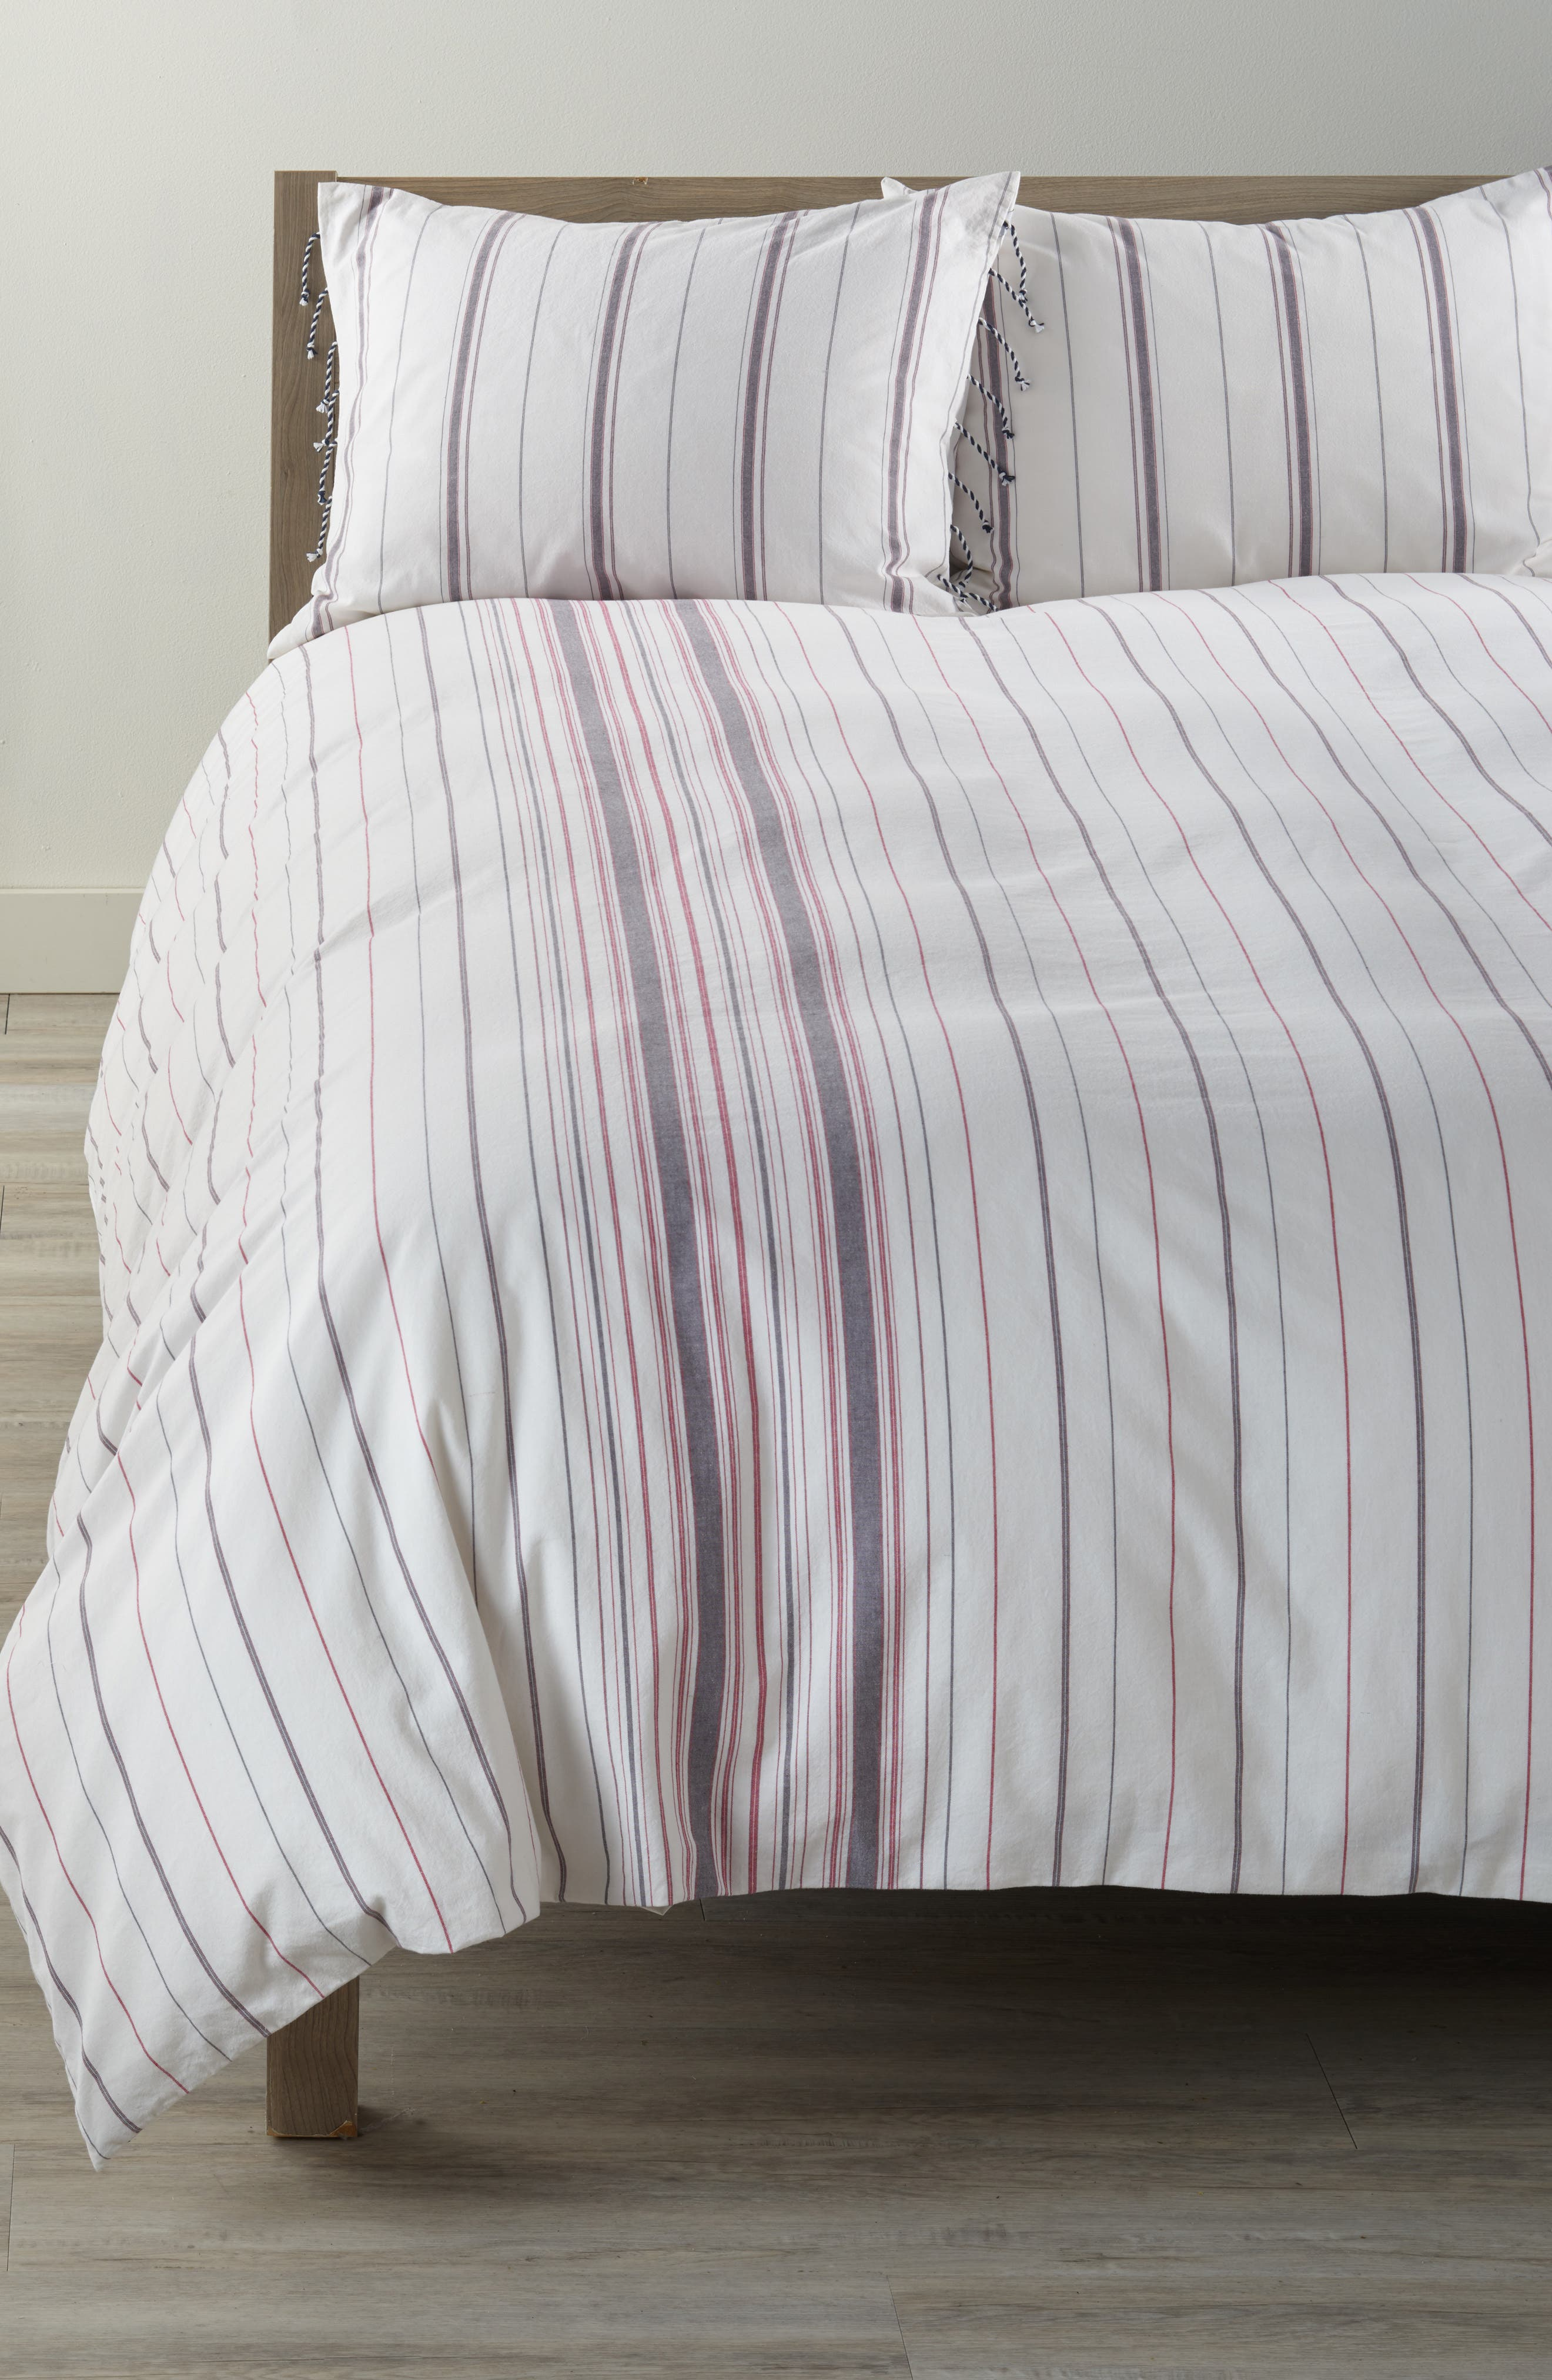 Alternate Image 1 Selected - cupcakes and cashmere Mixed Stripe Duvet Cover